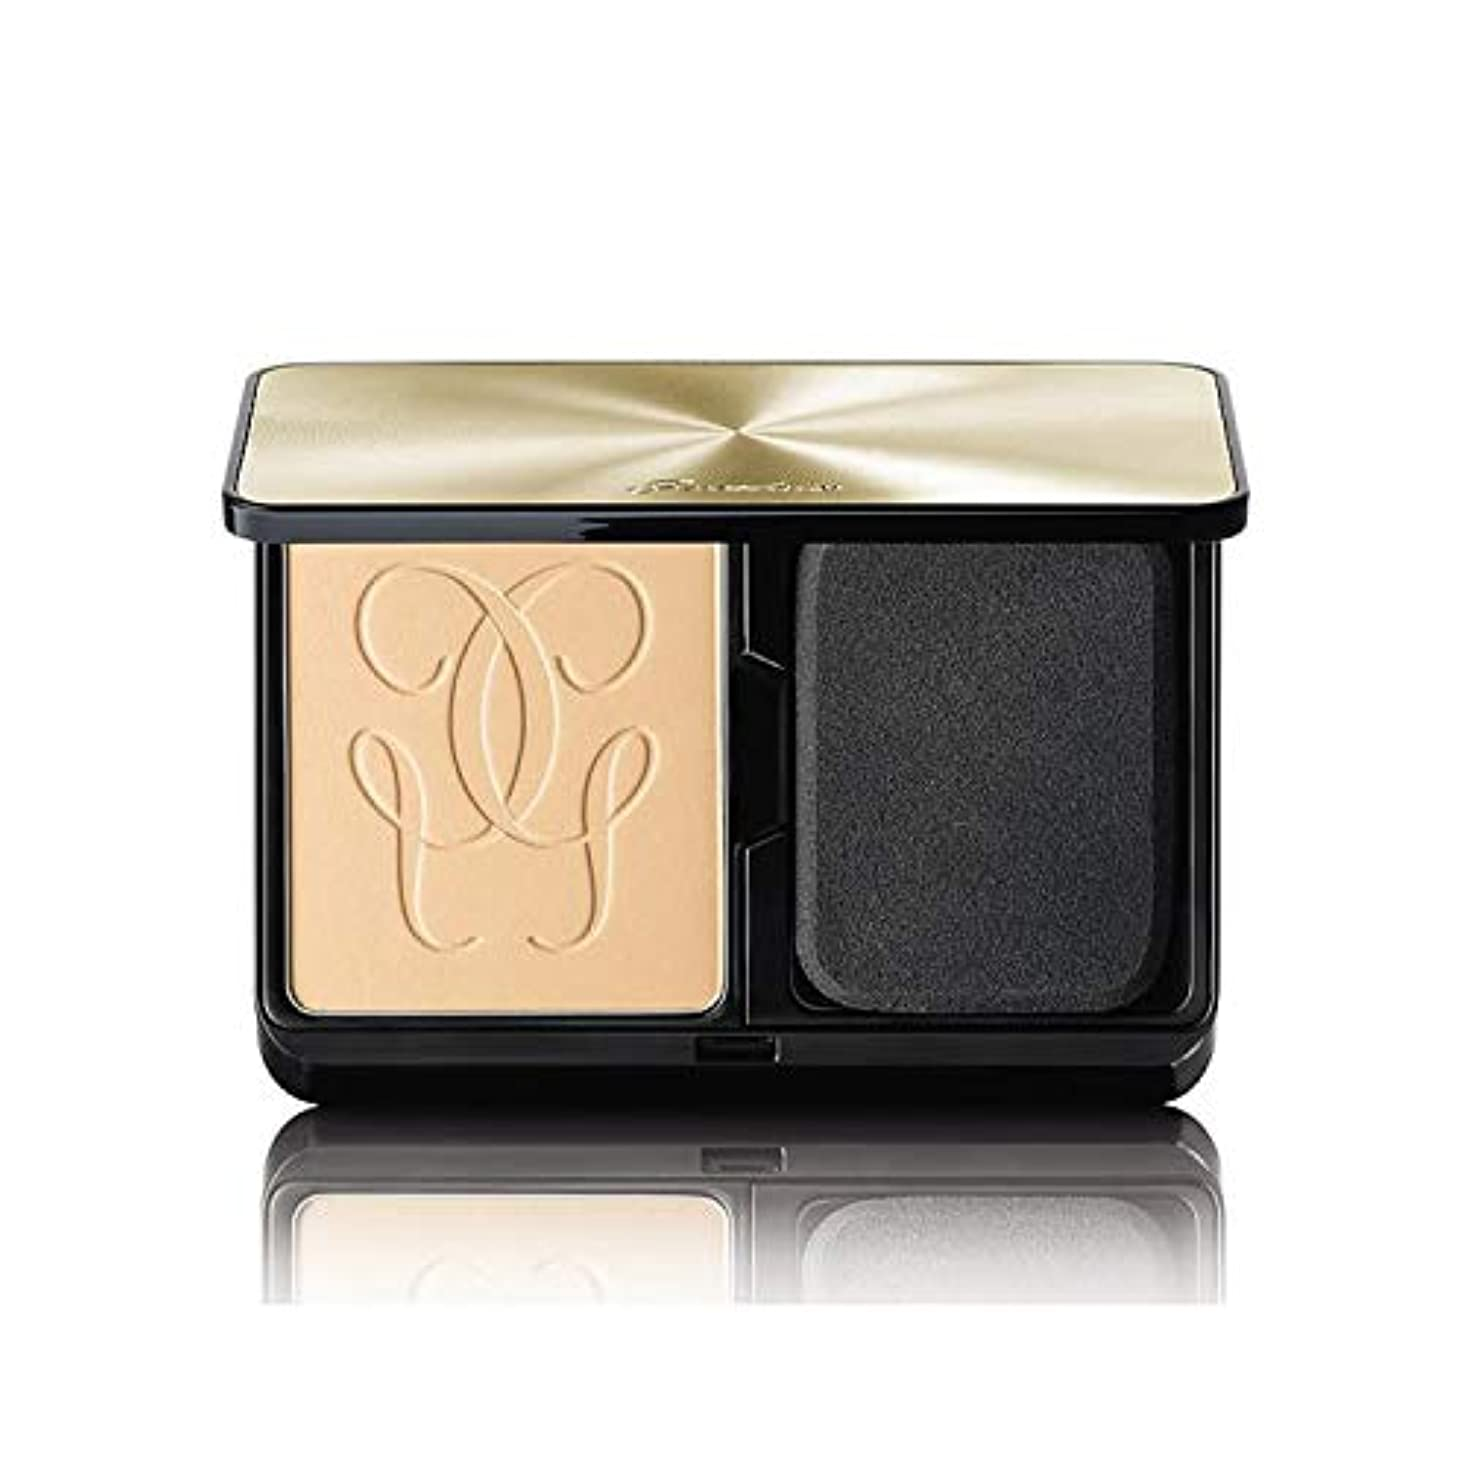 活気づく資料お手入れゲラン Lingerie De Peau Mat Alive Buildable Compact Powder Foundation SPF 15 - # 01N Very Light 8.5g/0.29oz並行輸入品